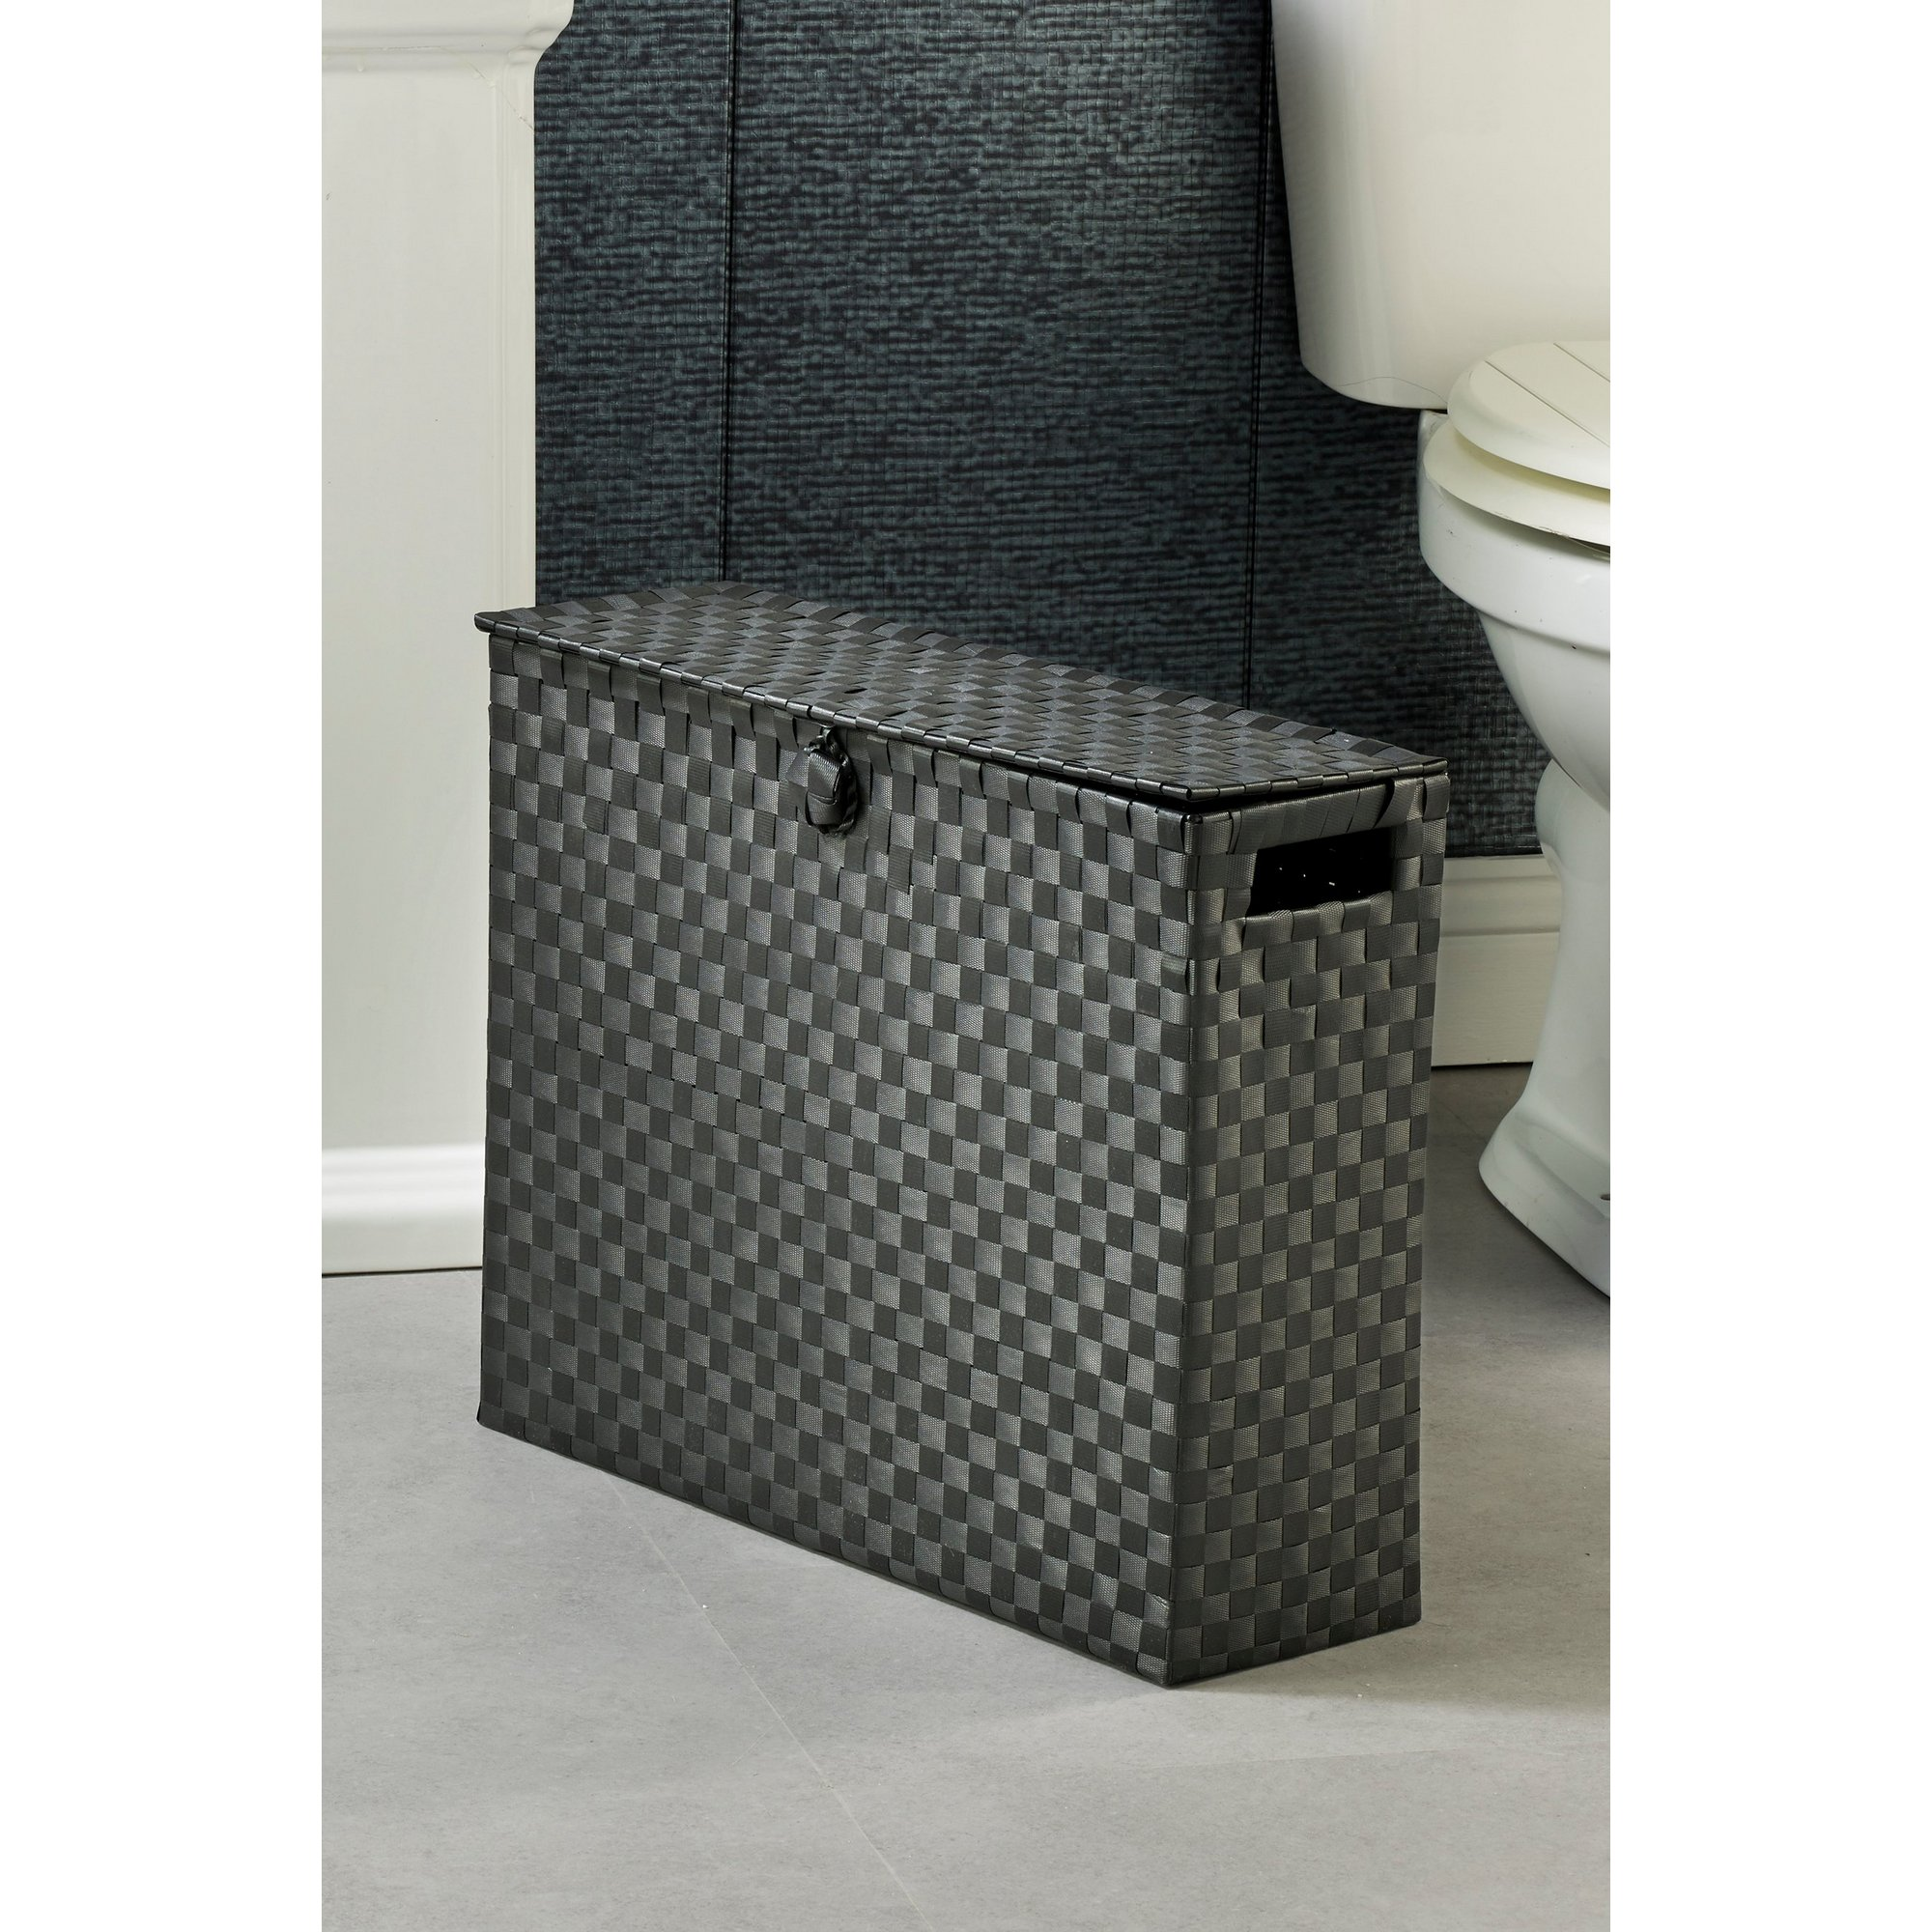 Image of Arpan Black Toilet Roll Holder